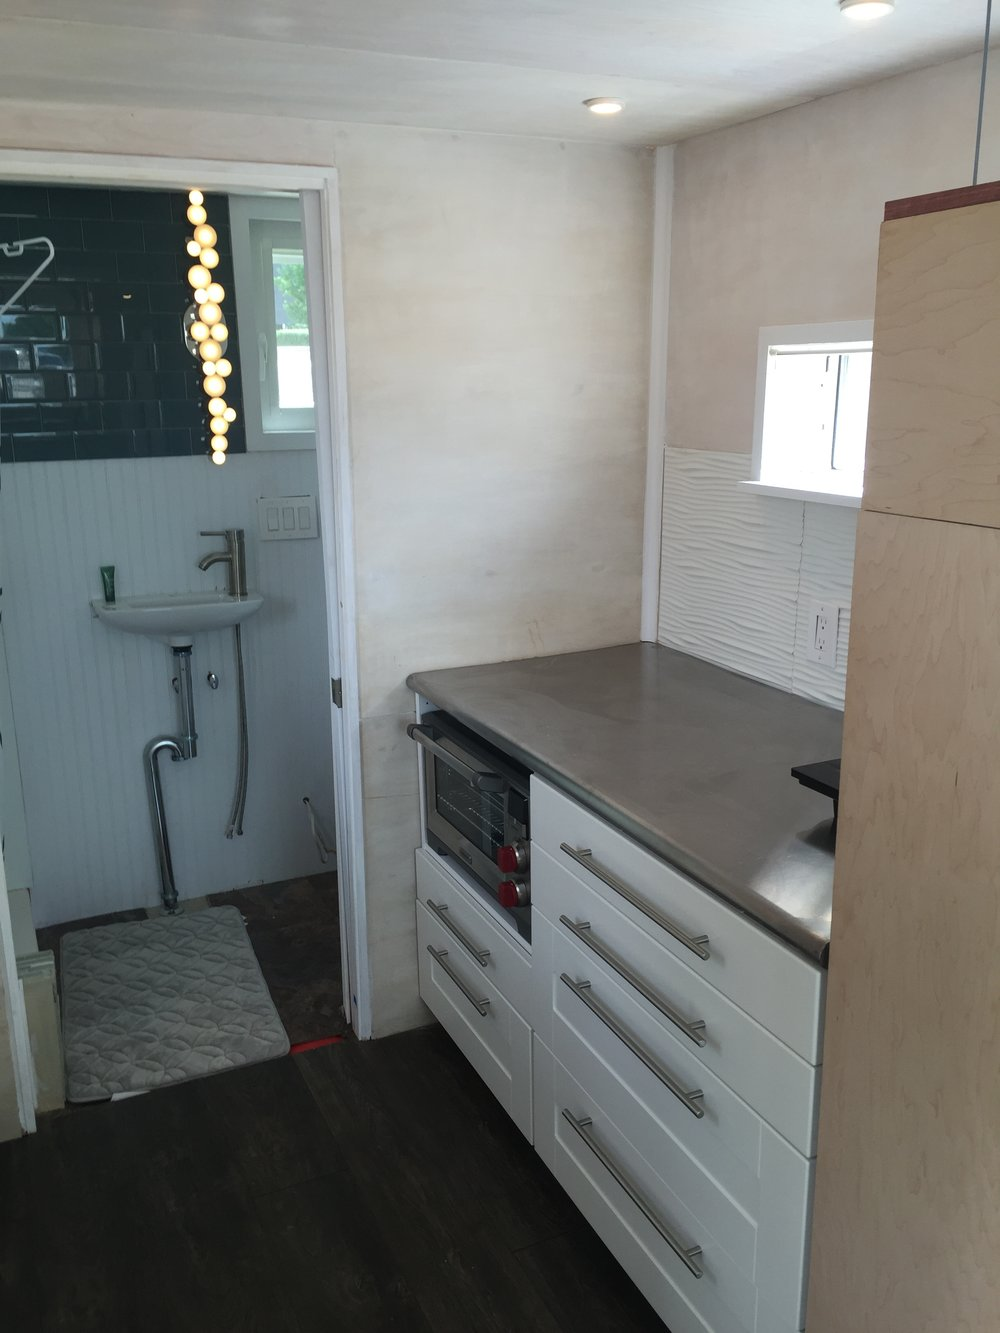 Modular. IKEAu0027s latest line of kitchen cabinets ... & Using IKEA Cabinets in a Tiny House: An In-Depth Review u2014 tiny ...